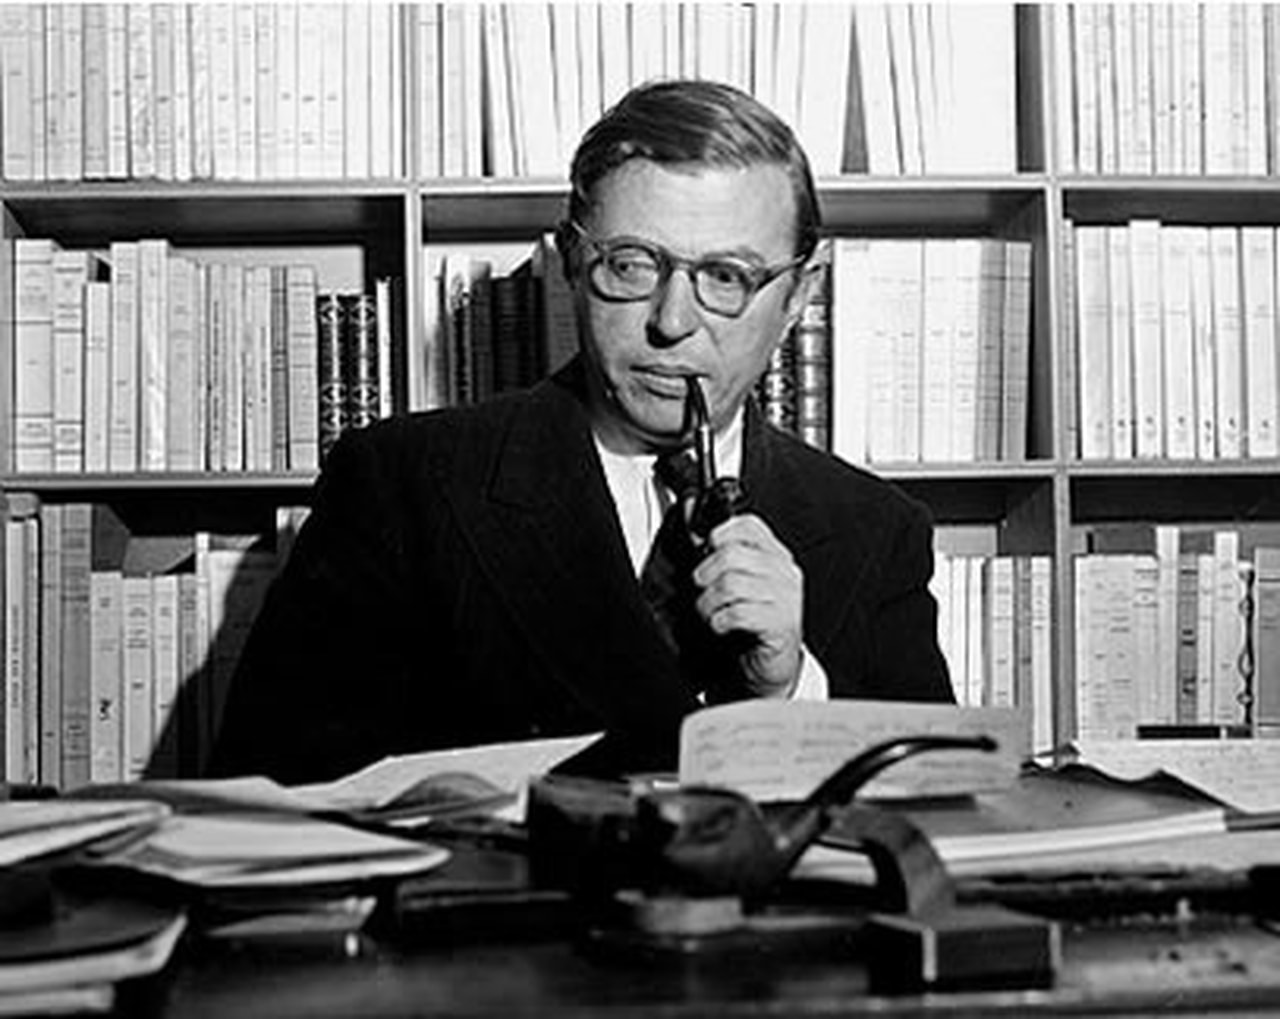 Ten thoughts of Jean-Paul Sartre on the meaning of Life